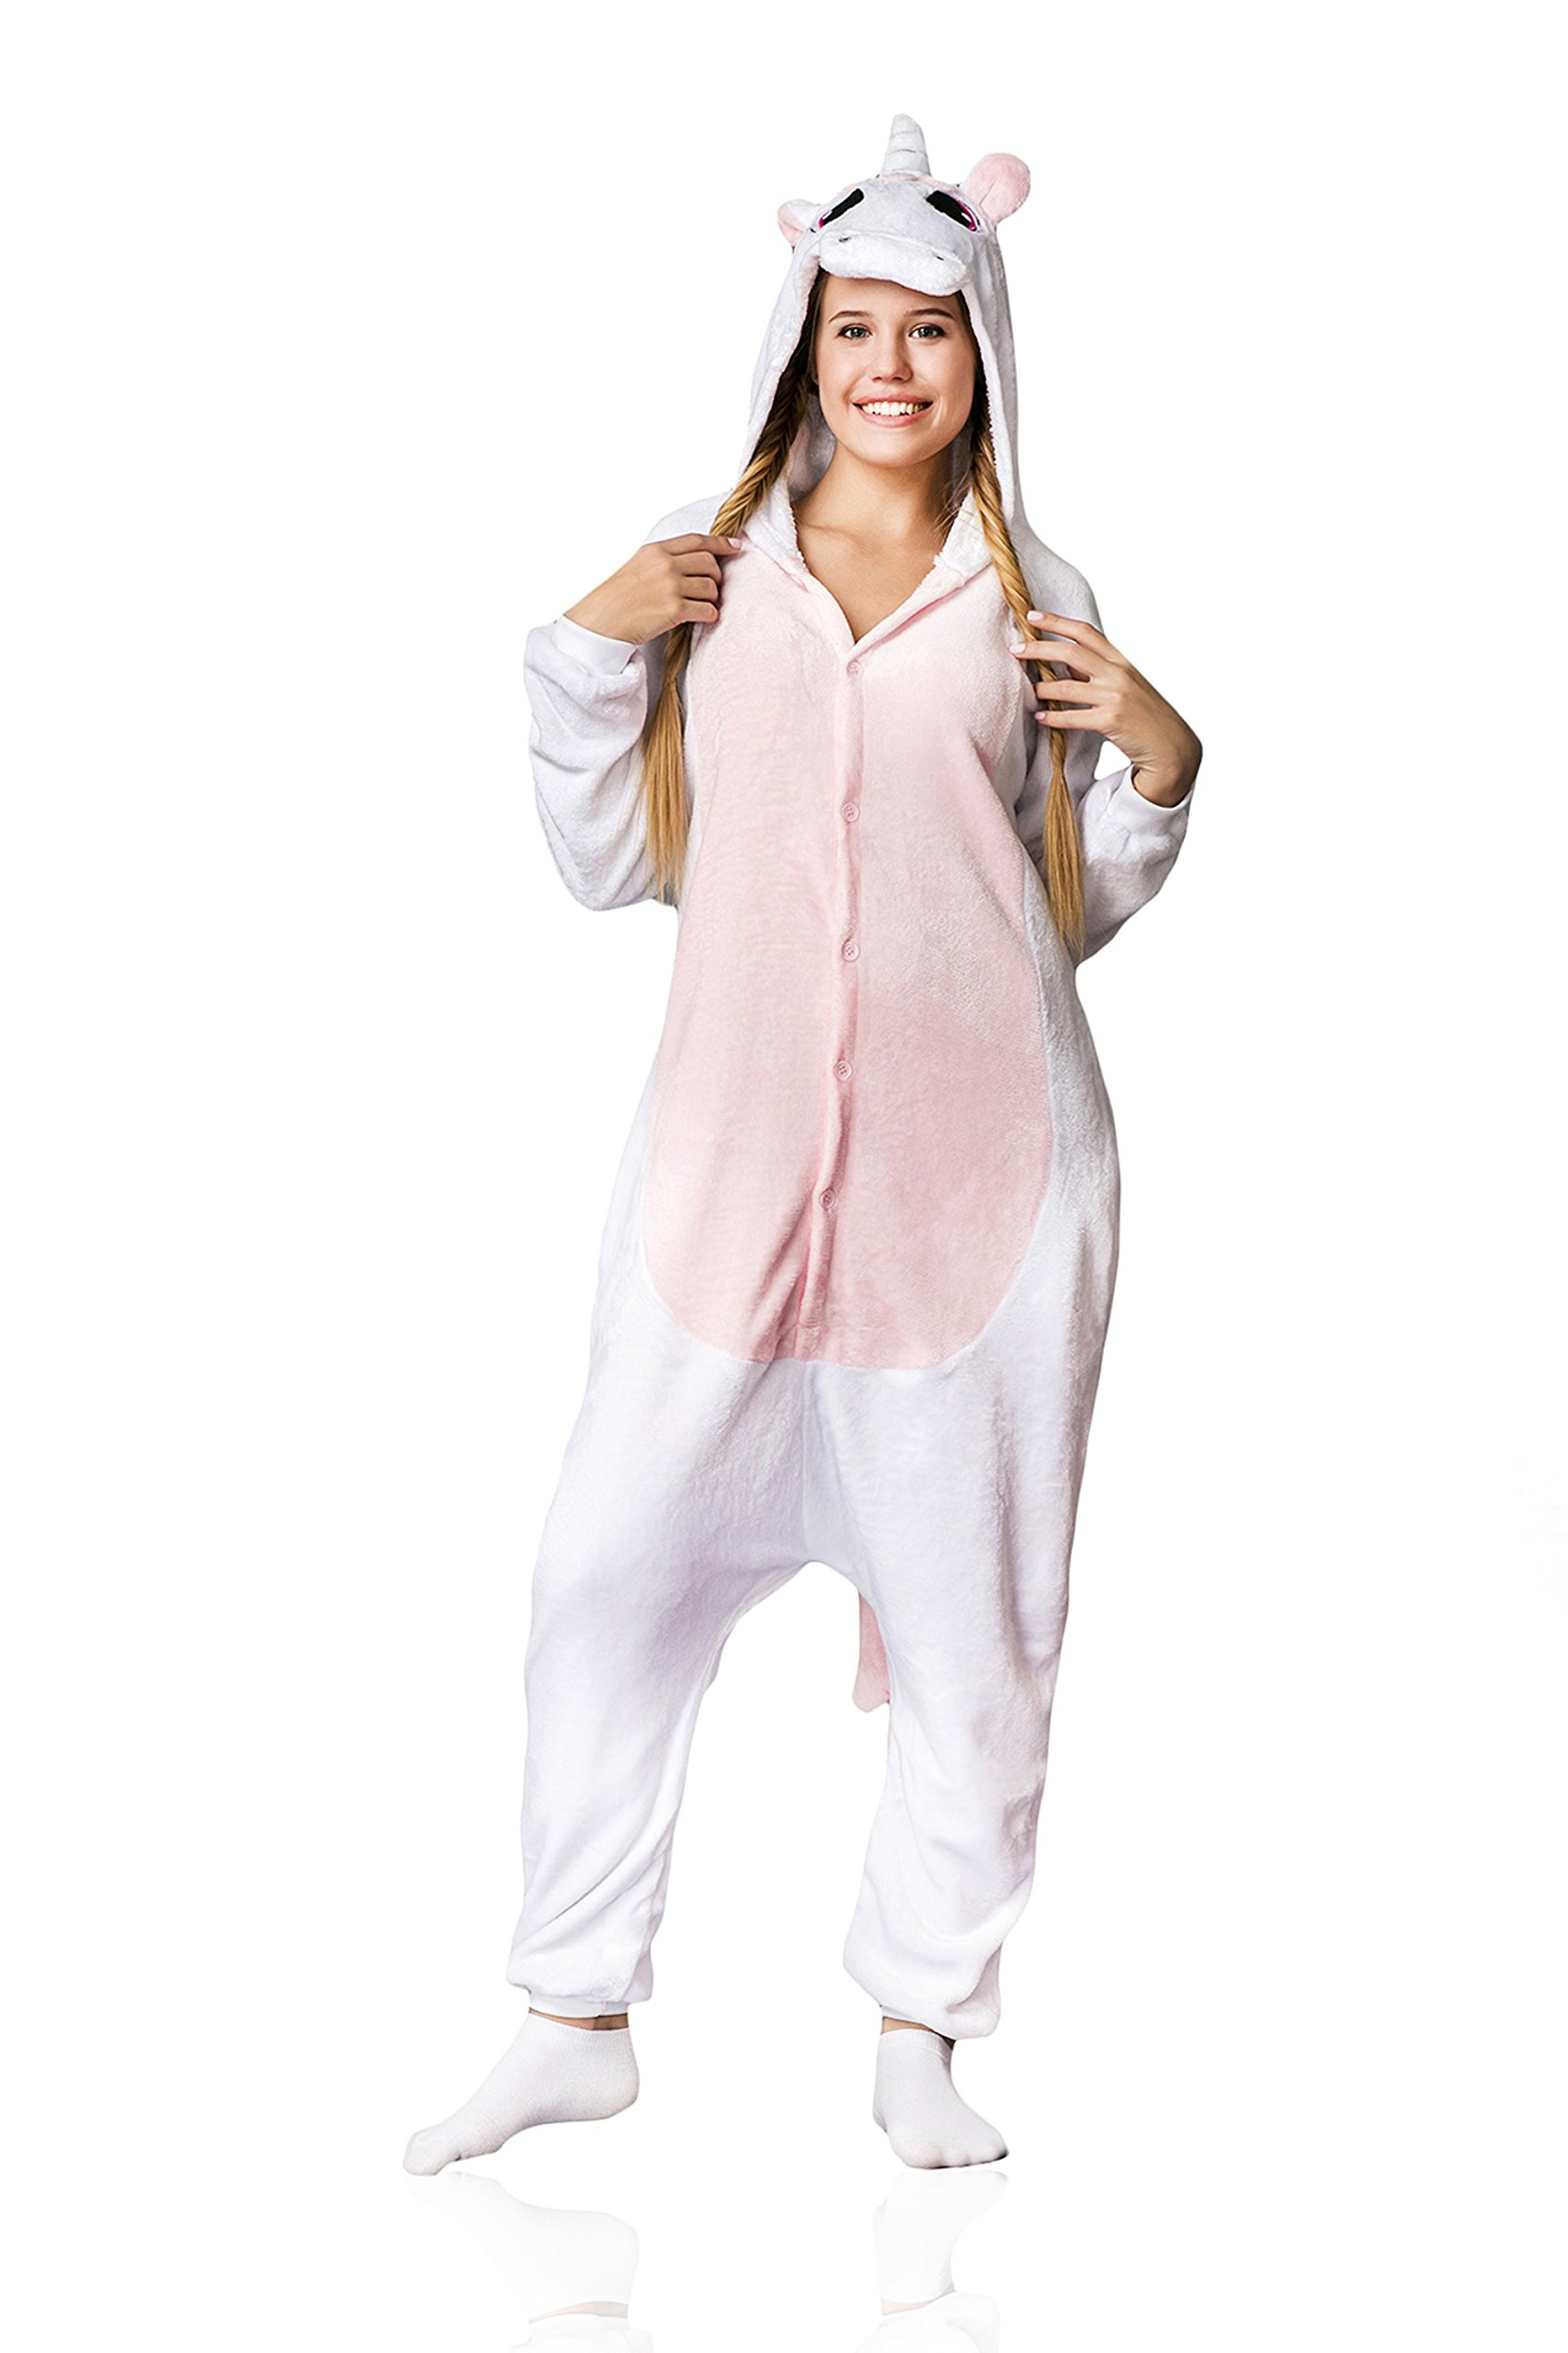 Adult Unicorn Kigurumi Animal Onesie Pajamas Plush Onsie One Piece Cosplay Costume (S, white, pink)